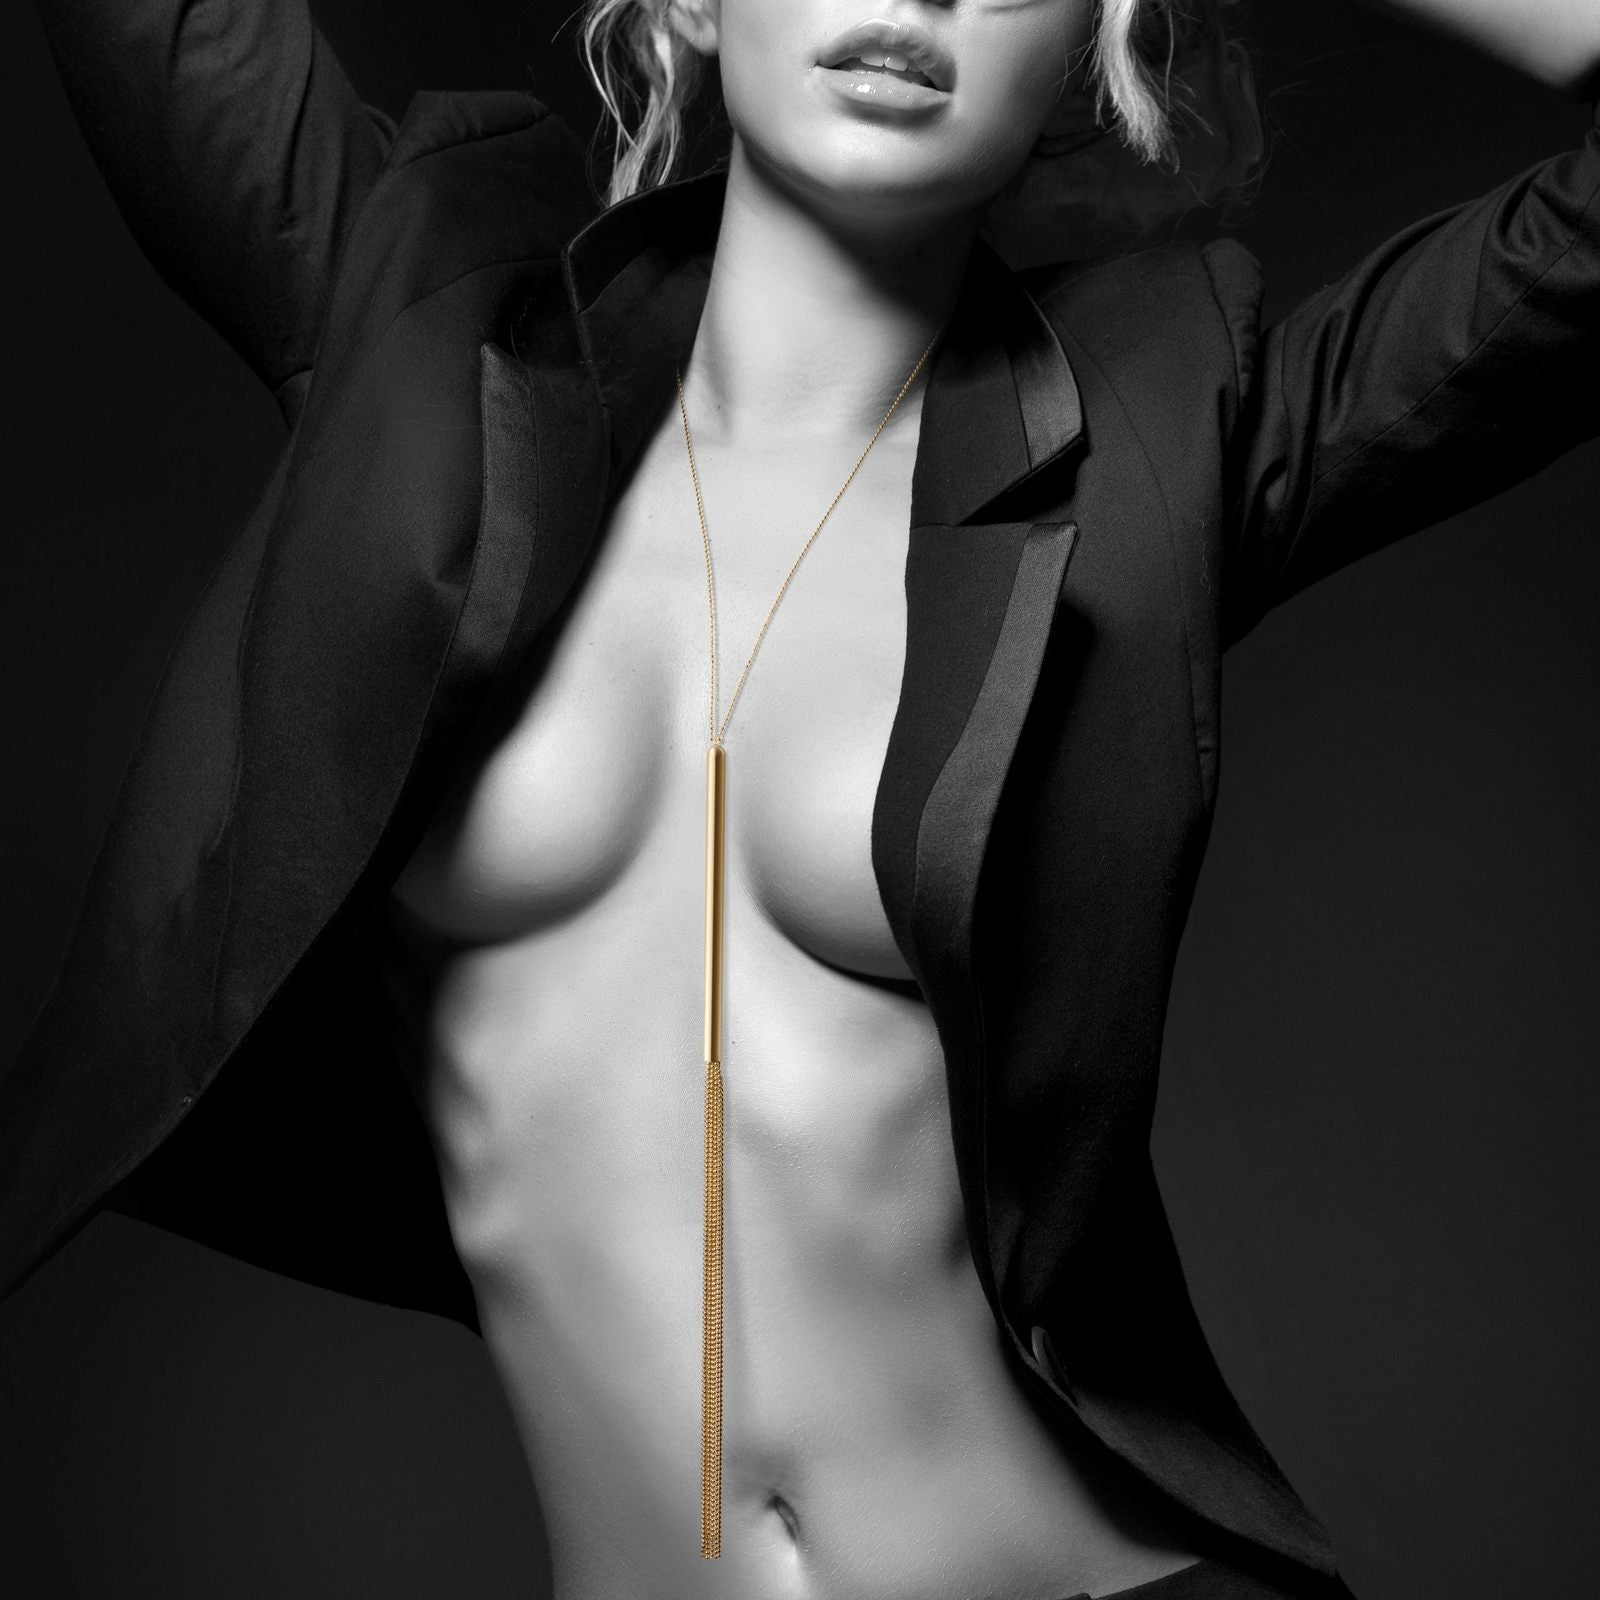 la-vie-sexuelle - Magnifique gold whip necklace | Bijoux Indiscrets | Adult sex toy | S & M - Bijoux Indiscrets - adult toy